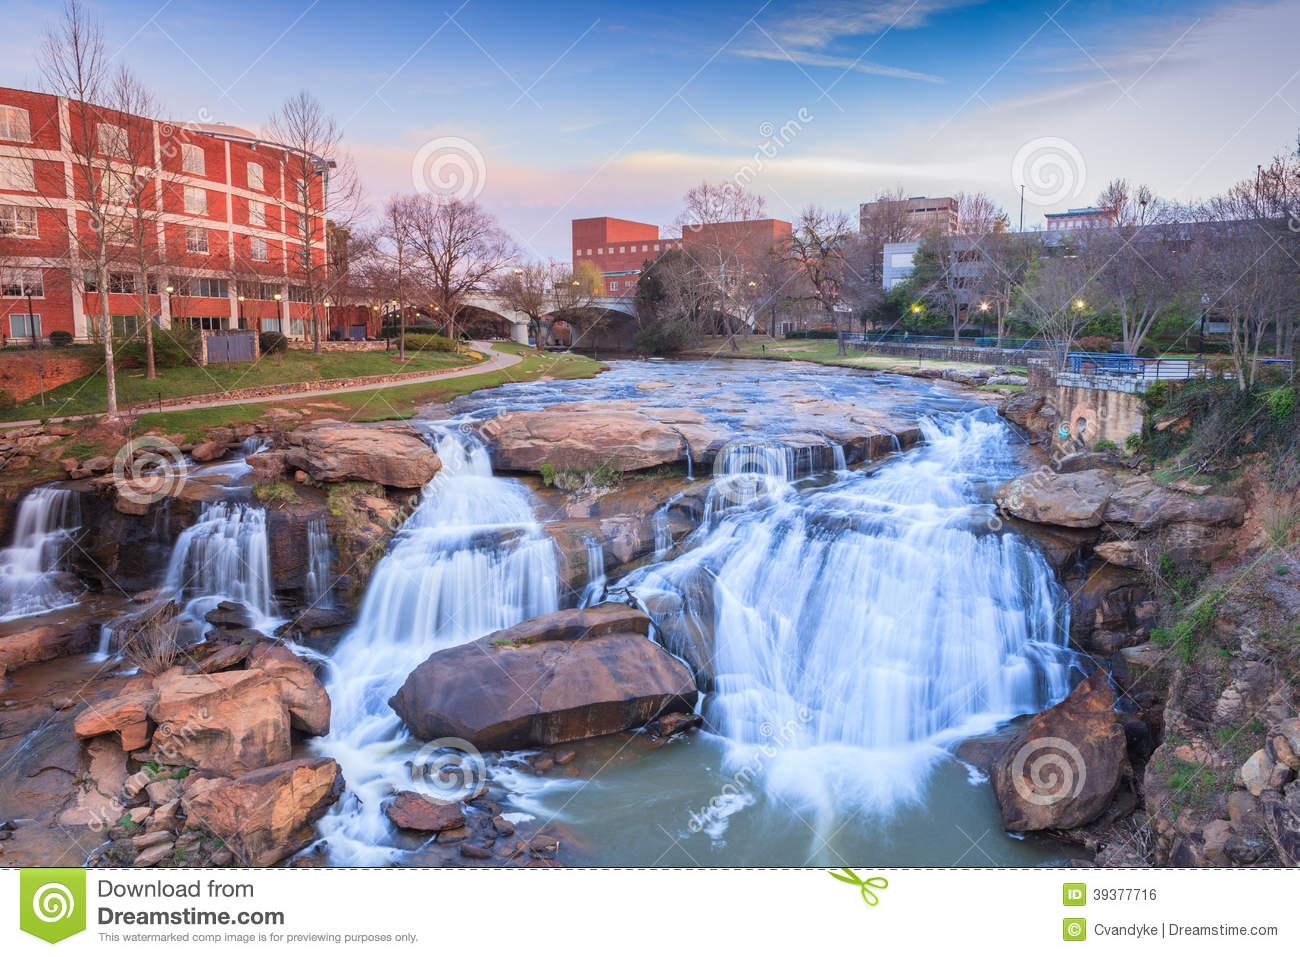 map downtown greenville sc with Royalty Free Stock Image Reedy River Waterfalls Greenville South Carolina River Walk Falls Park Middle Downtown Image39377716 on 20964041 furthermore Central besides Interactive C us Map in addition Mauldin Sc purzuit furthermore 6261125299.